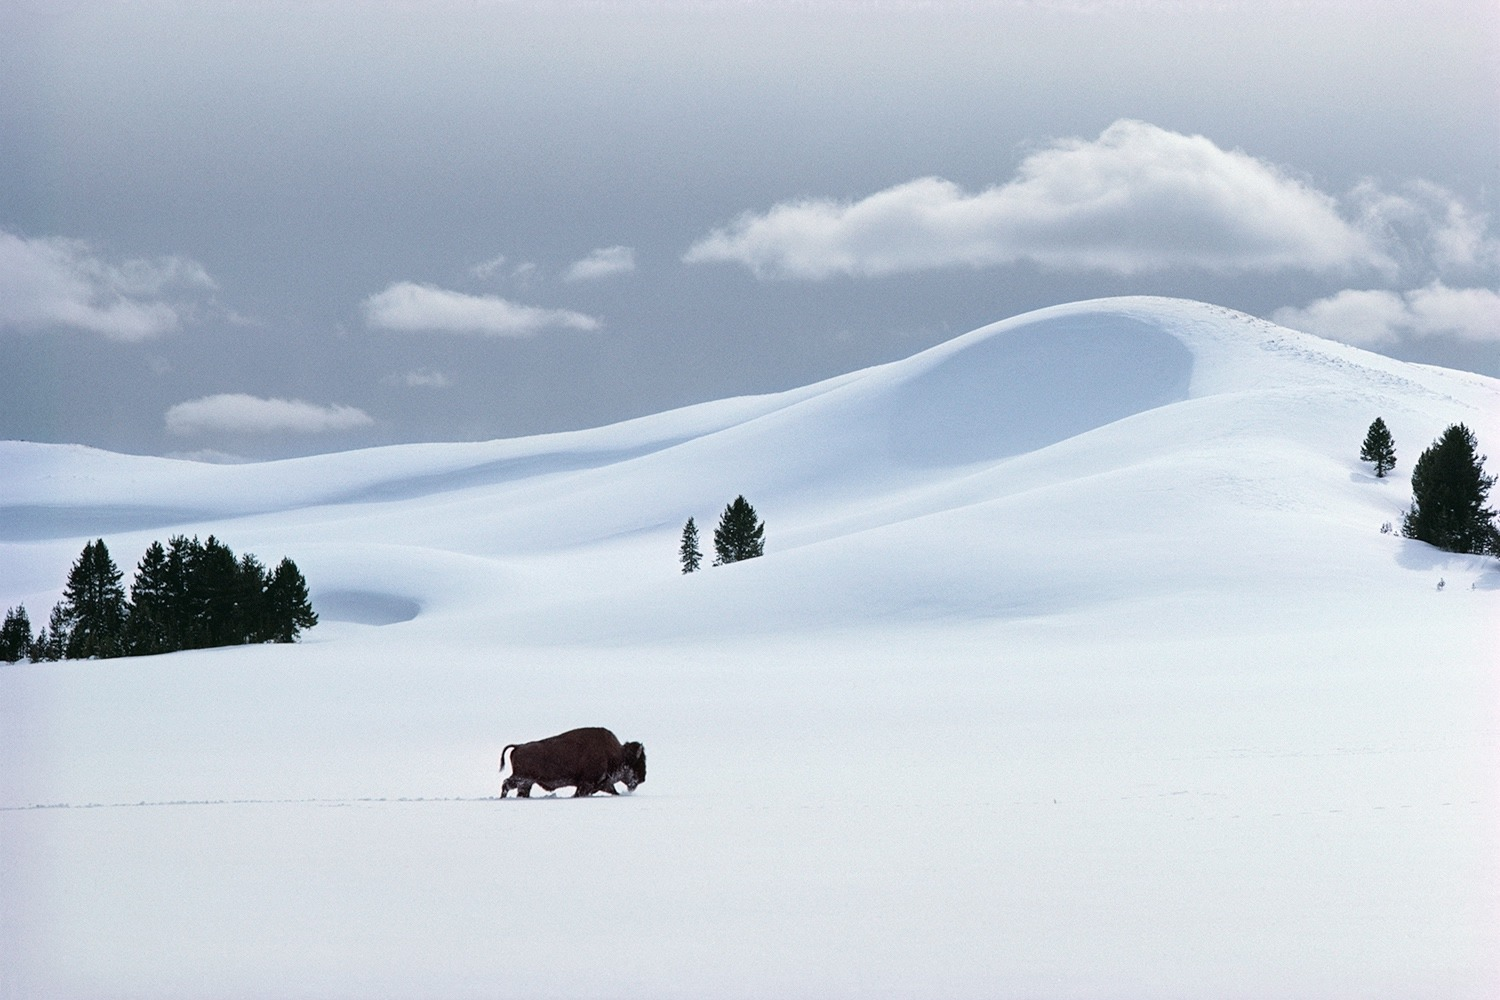 """I have long thought of Yellowstone in winter as an albino desert of snow dunes where much of the water is locked up in crystalline solids,"" Fuller observes. ""In Yellowstone, as in Namibia, the landscape is often animated by large spectacular animals. Here a bull bison makes his way across the mid-winter snowscape, a harsh environment of deep cold and deep snow but one in which he is at home."""